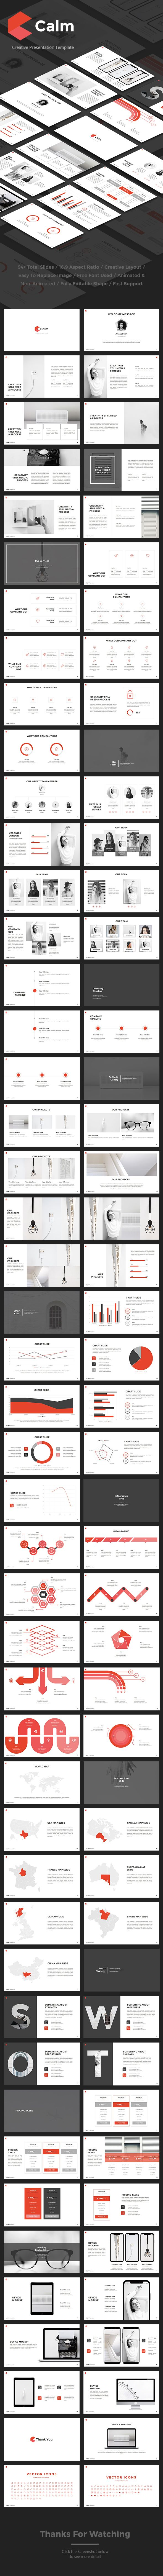 Calm Google Slides | Template, Presentation templates and Business ...